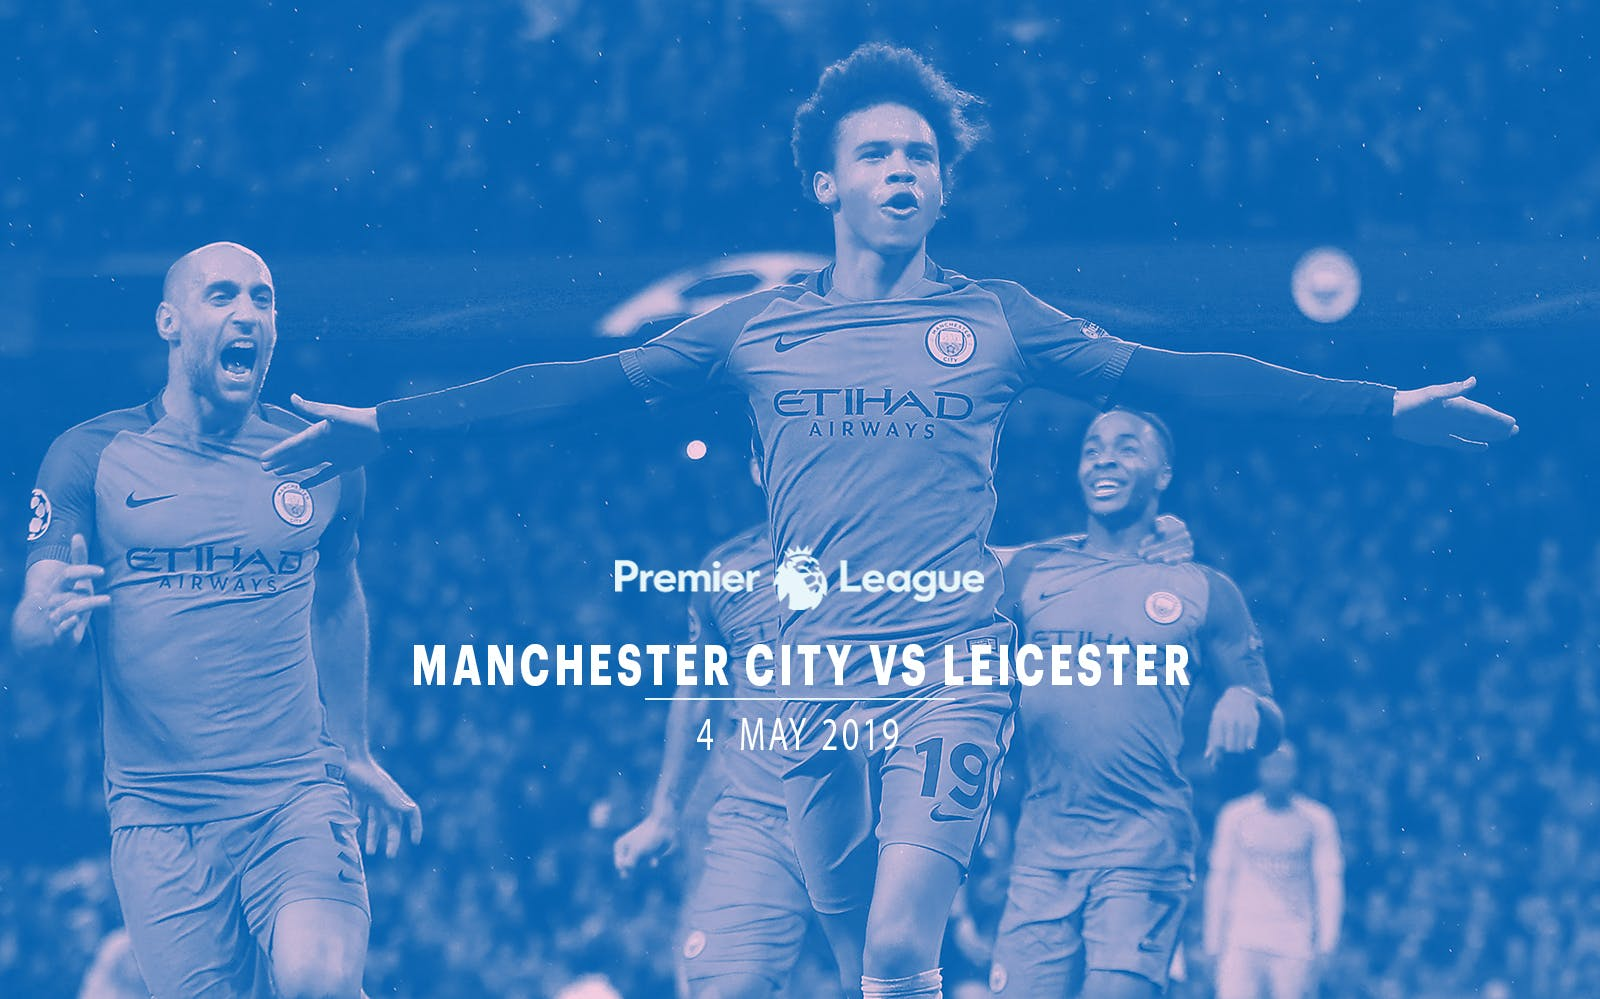 Manchester City vs Leicester - 4th May'19